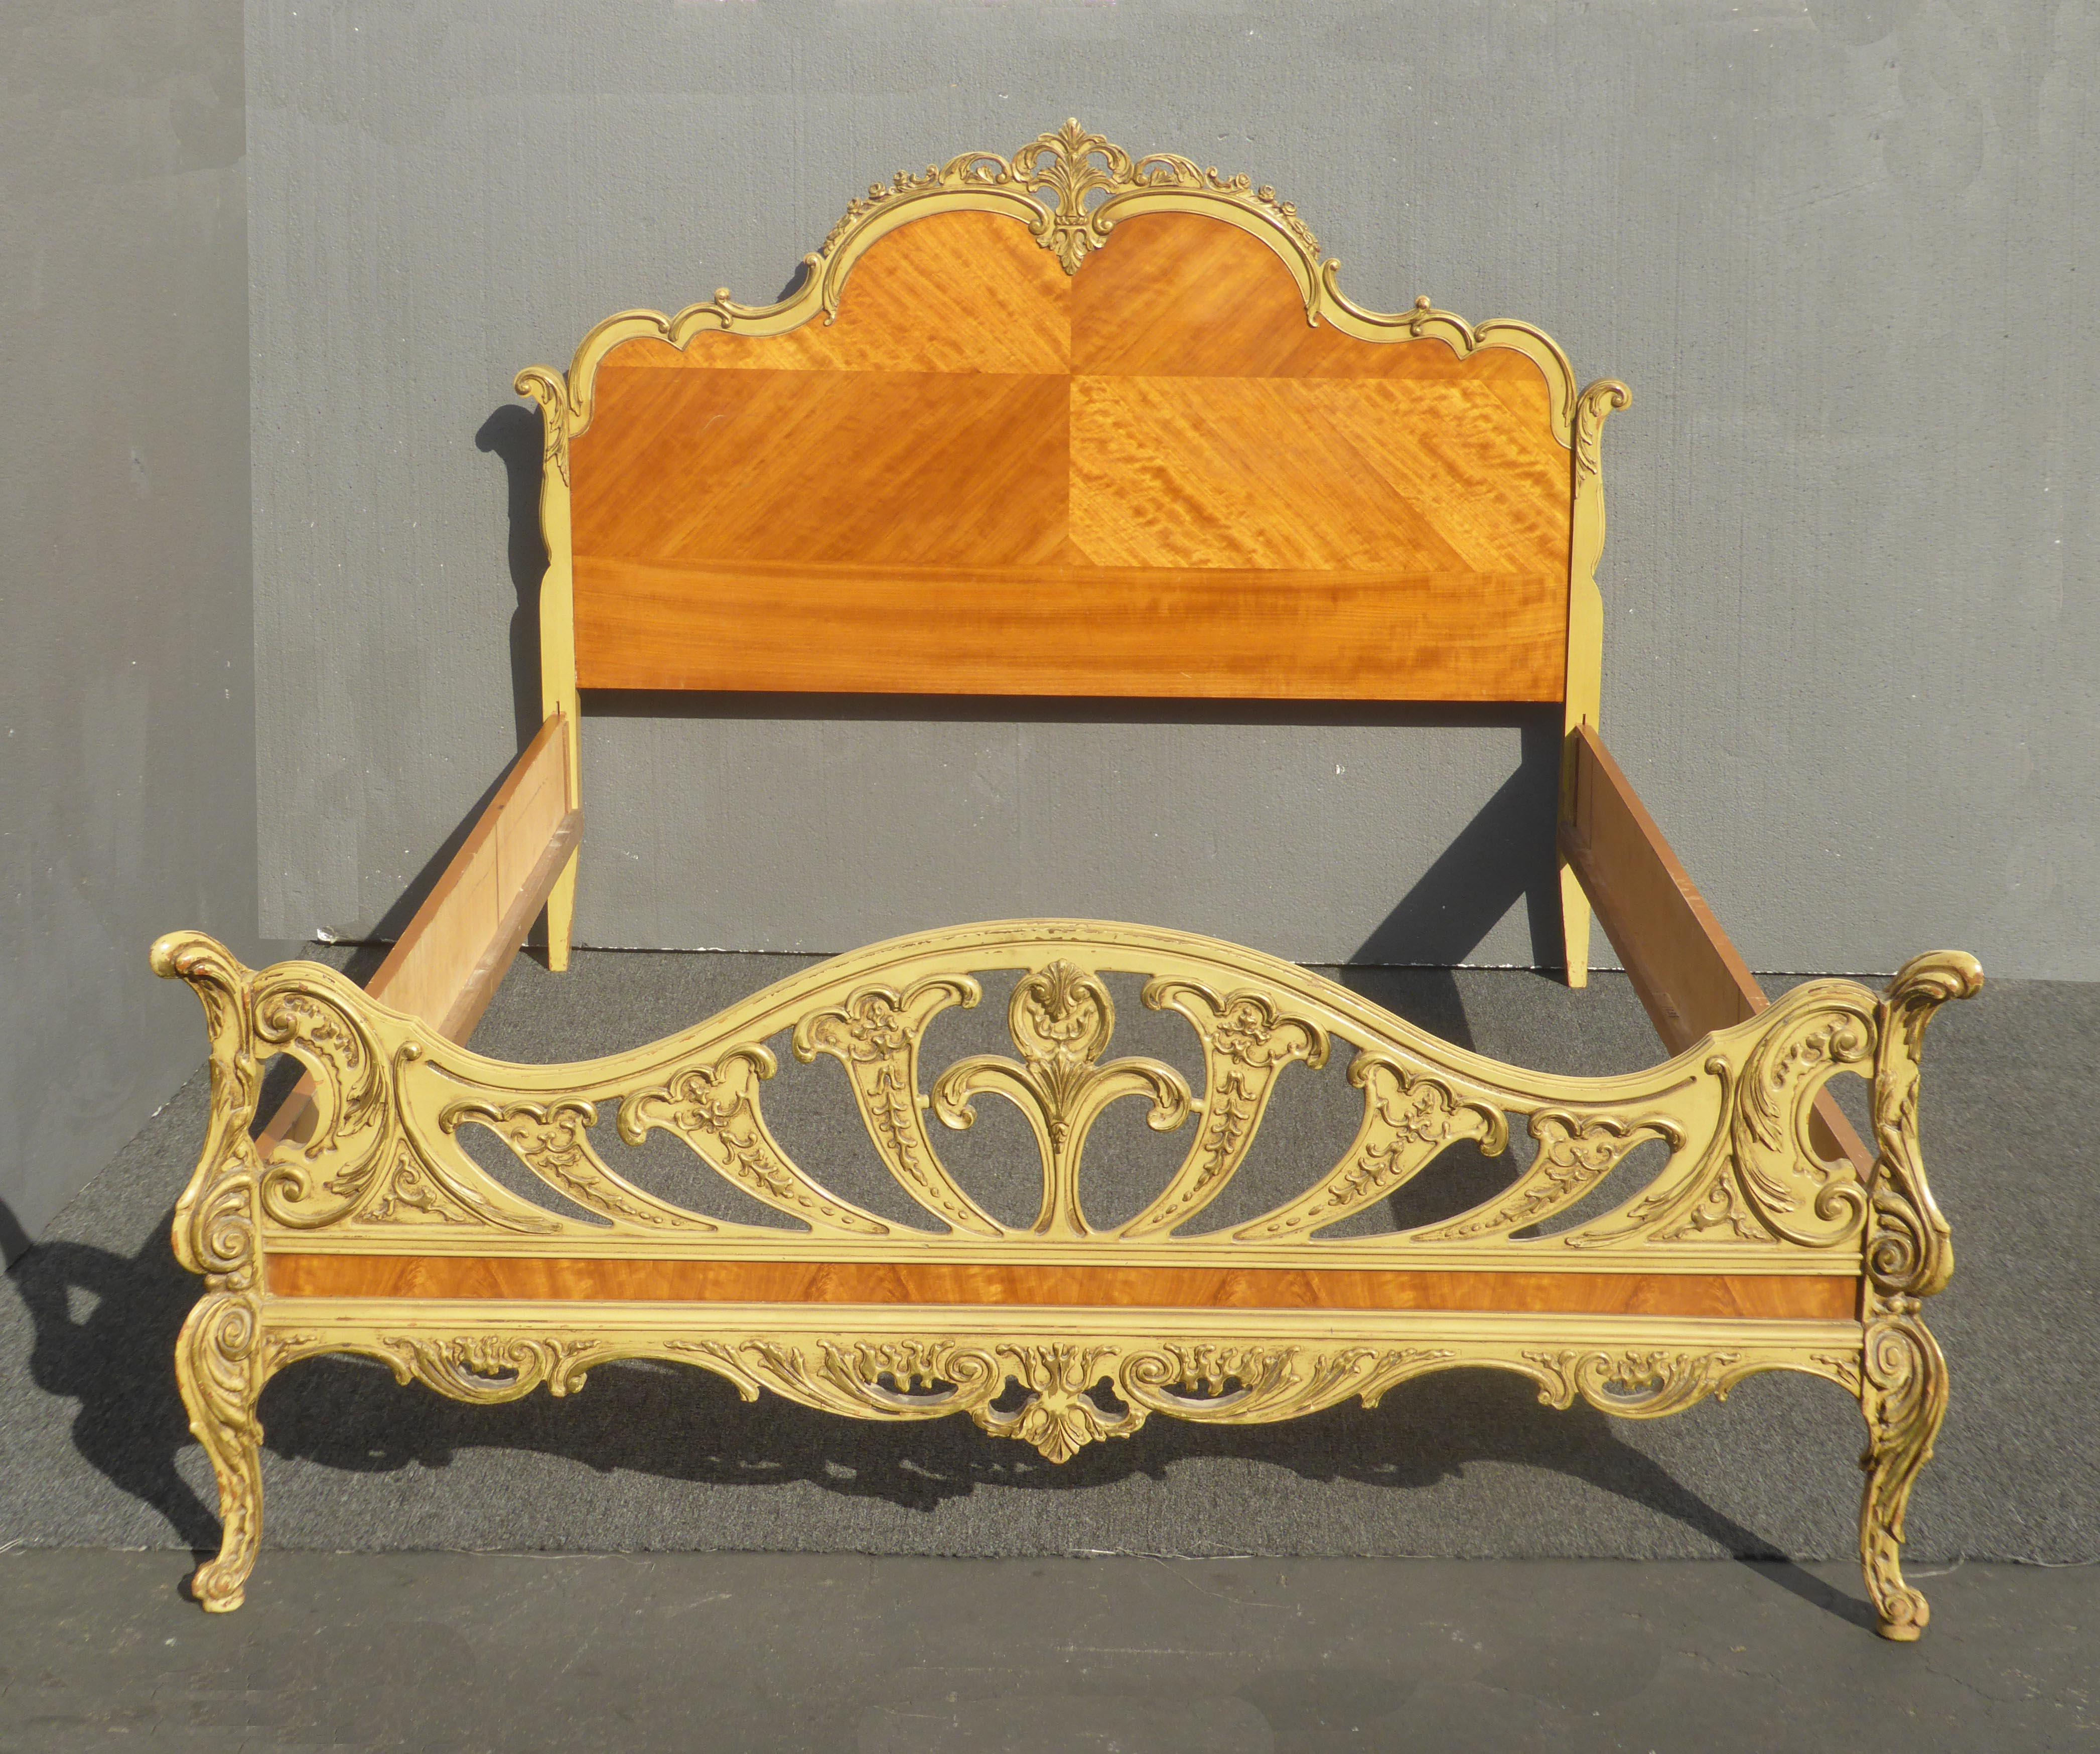 1920s Antique French Full Bed Frames Louis Xvl Rococo Ornate